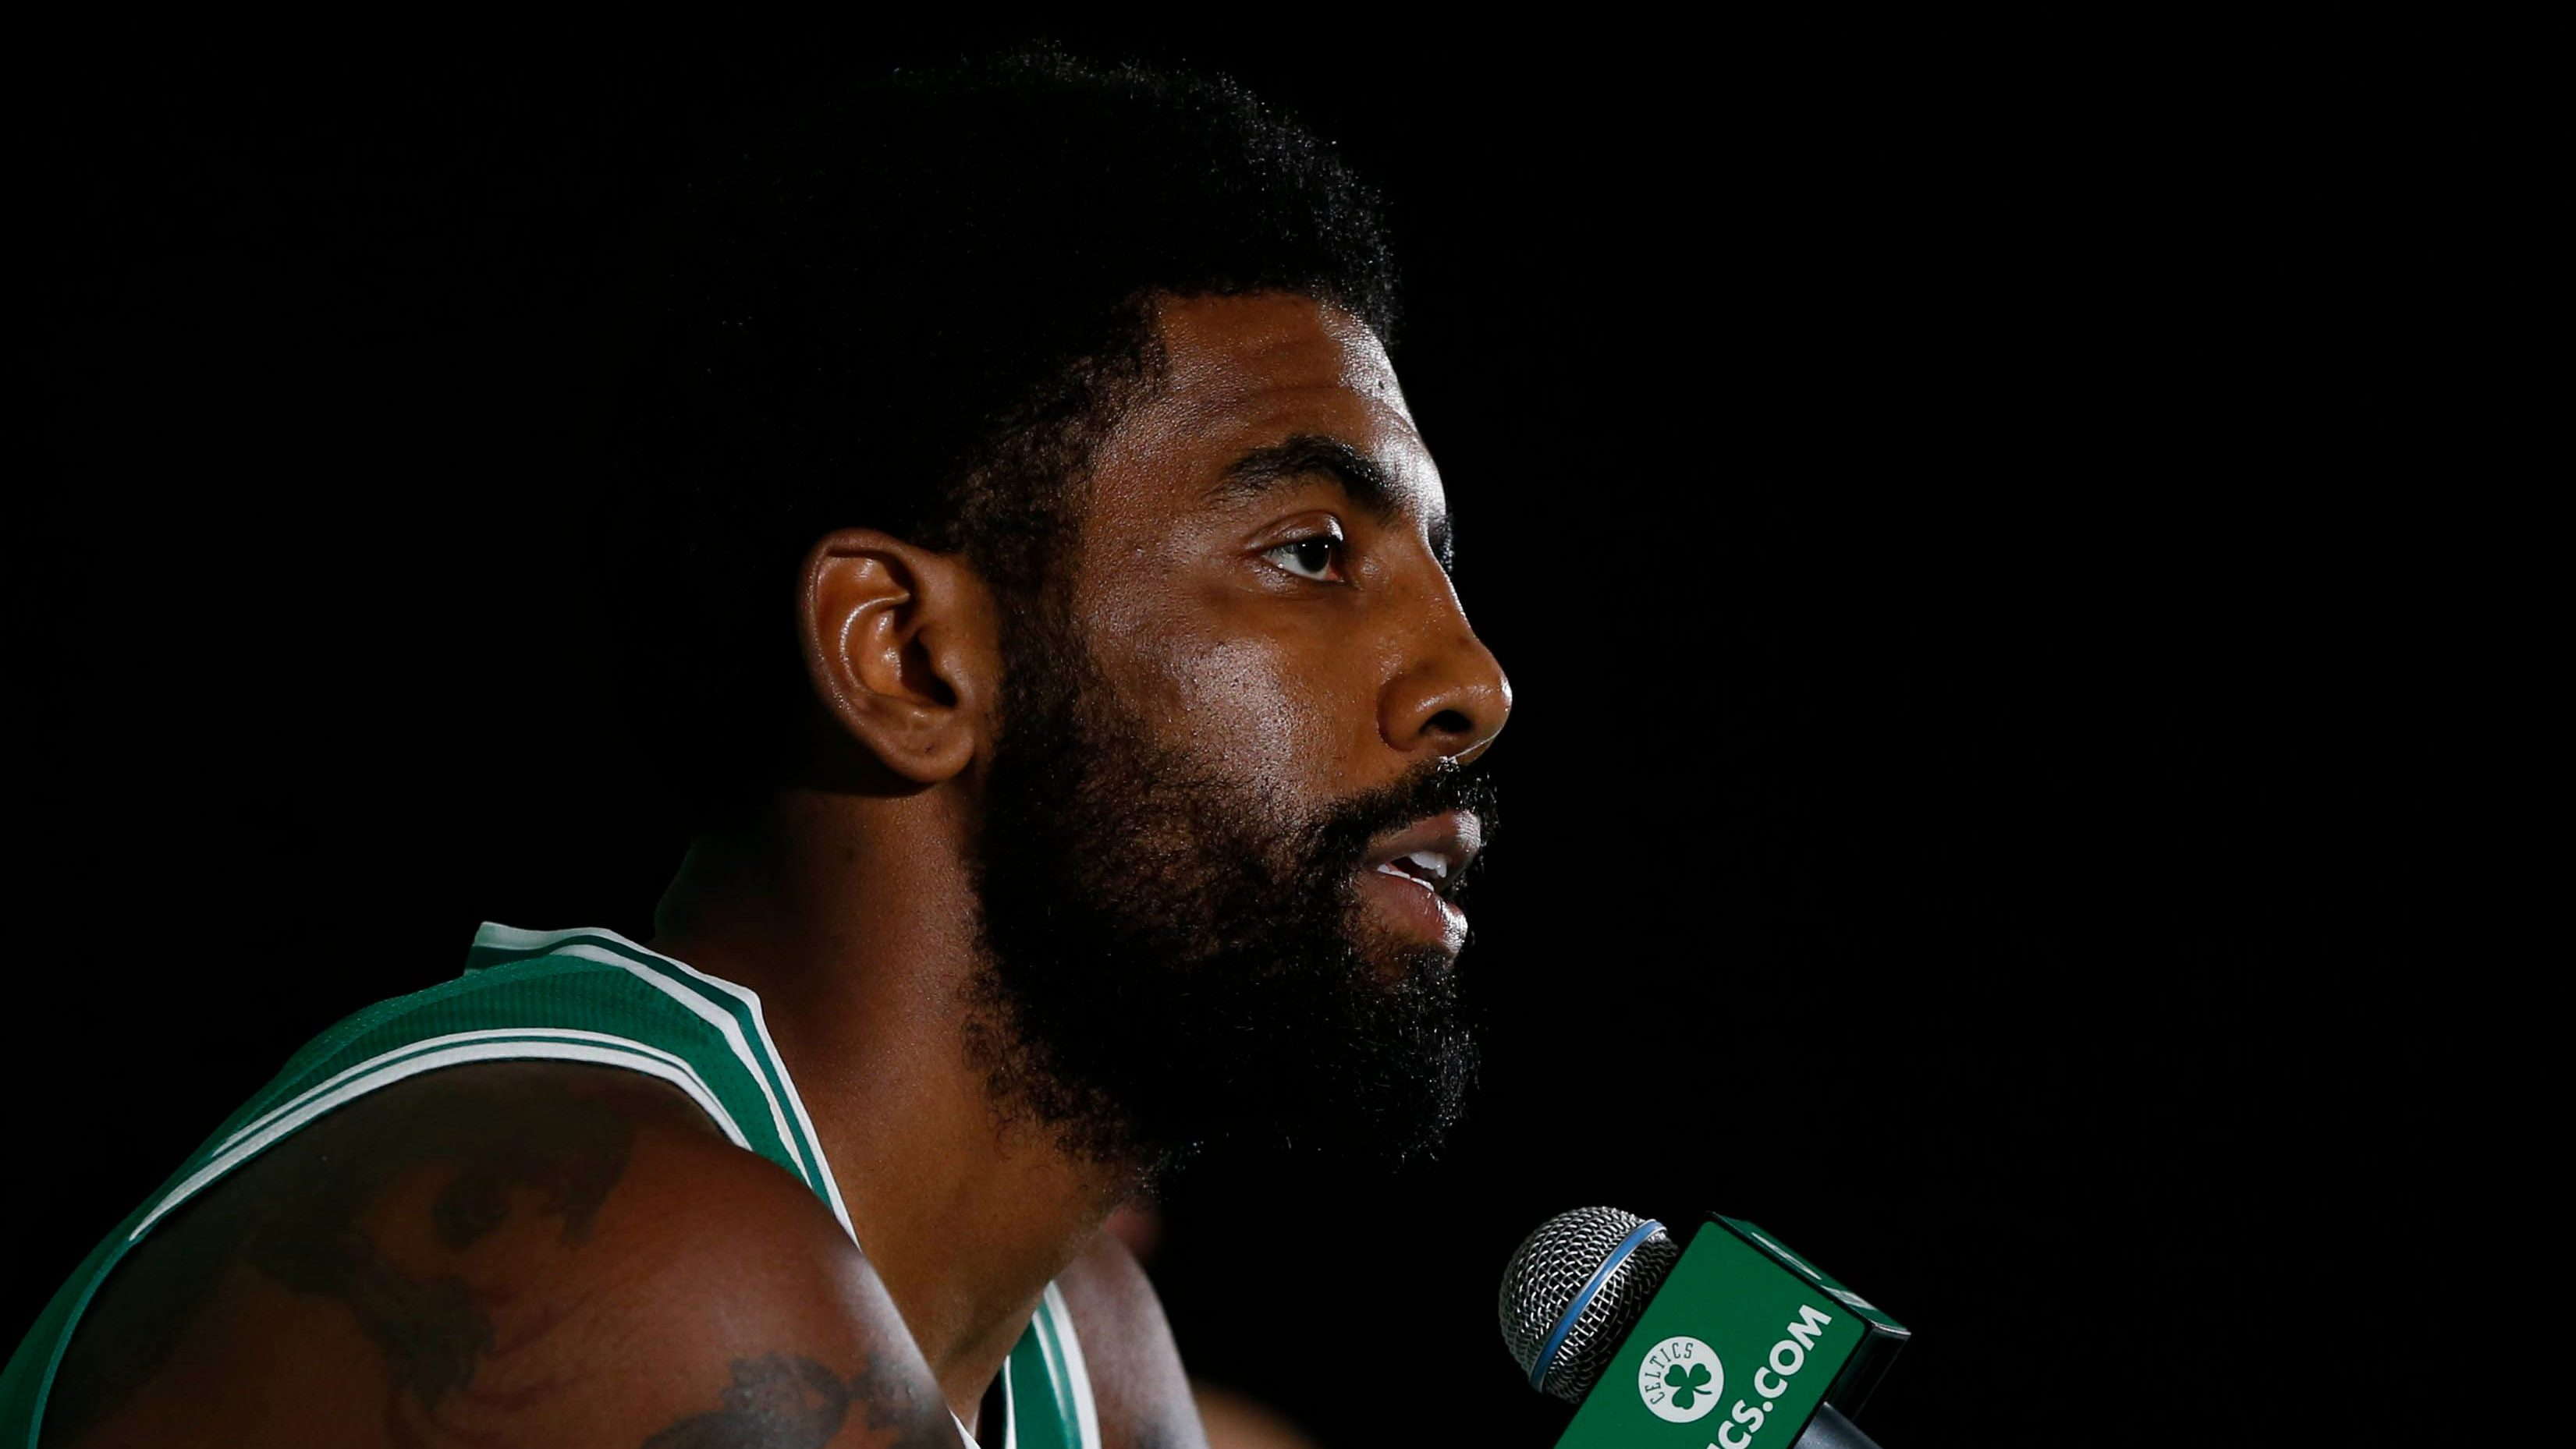 Kyrie Irving apologizes to US teachers for spreading flat-earth conspiracy  theories  489bb2fca